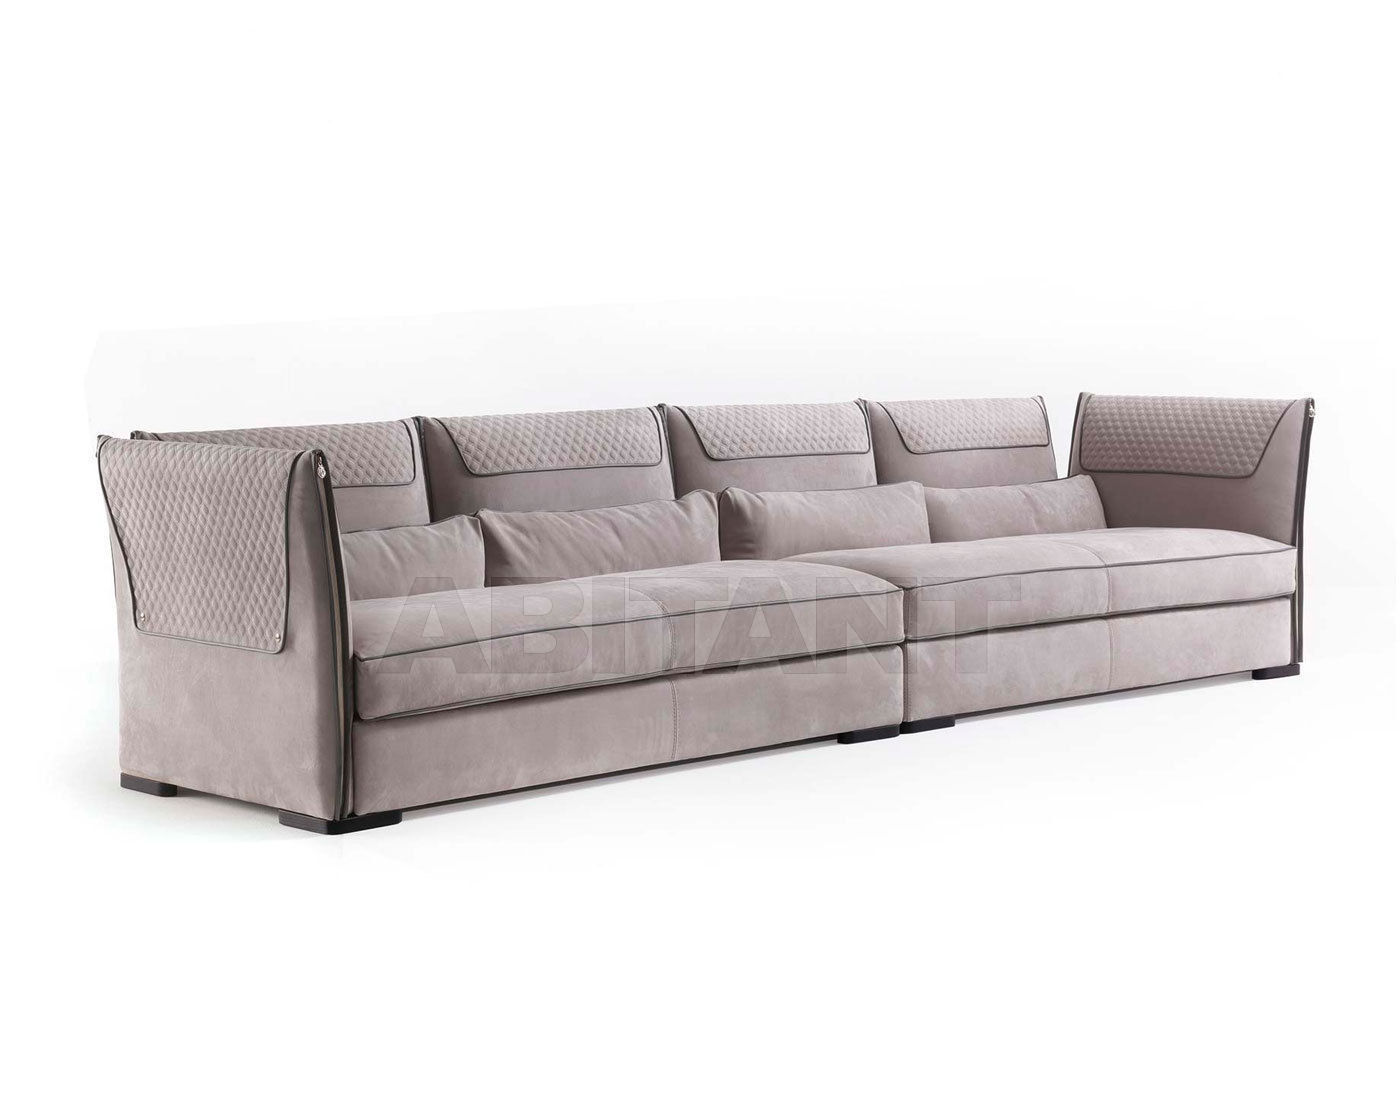 Sofa clivio gray vittoria frigerio by frigerio poltrone e for Divani ecopelle poltrone e sofa